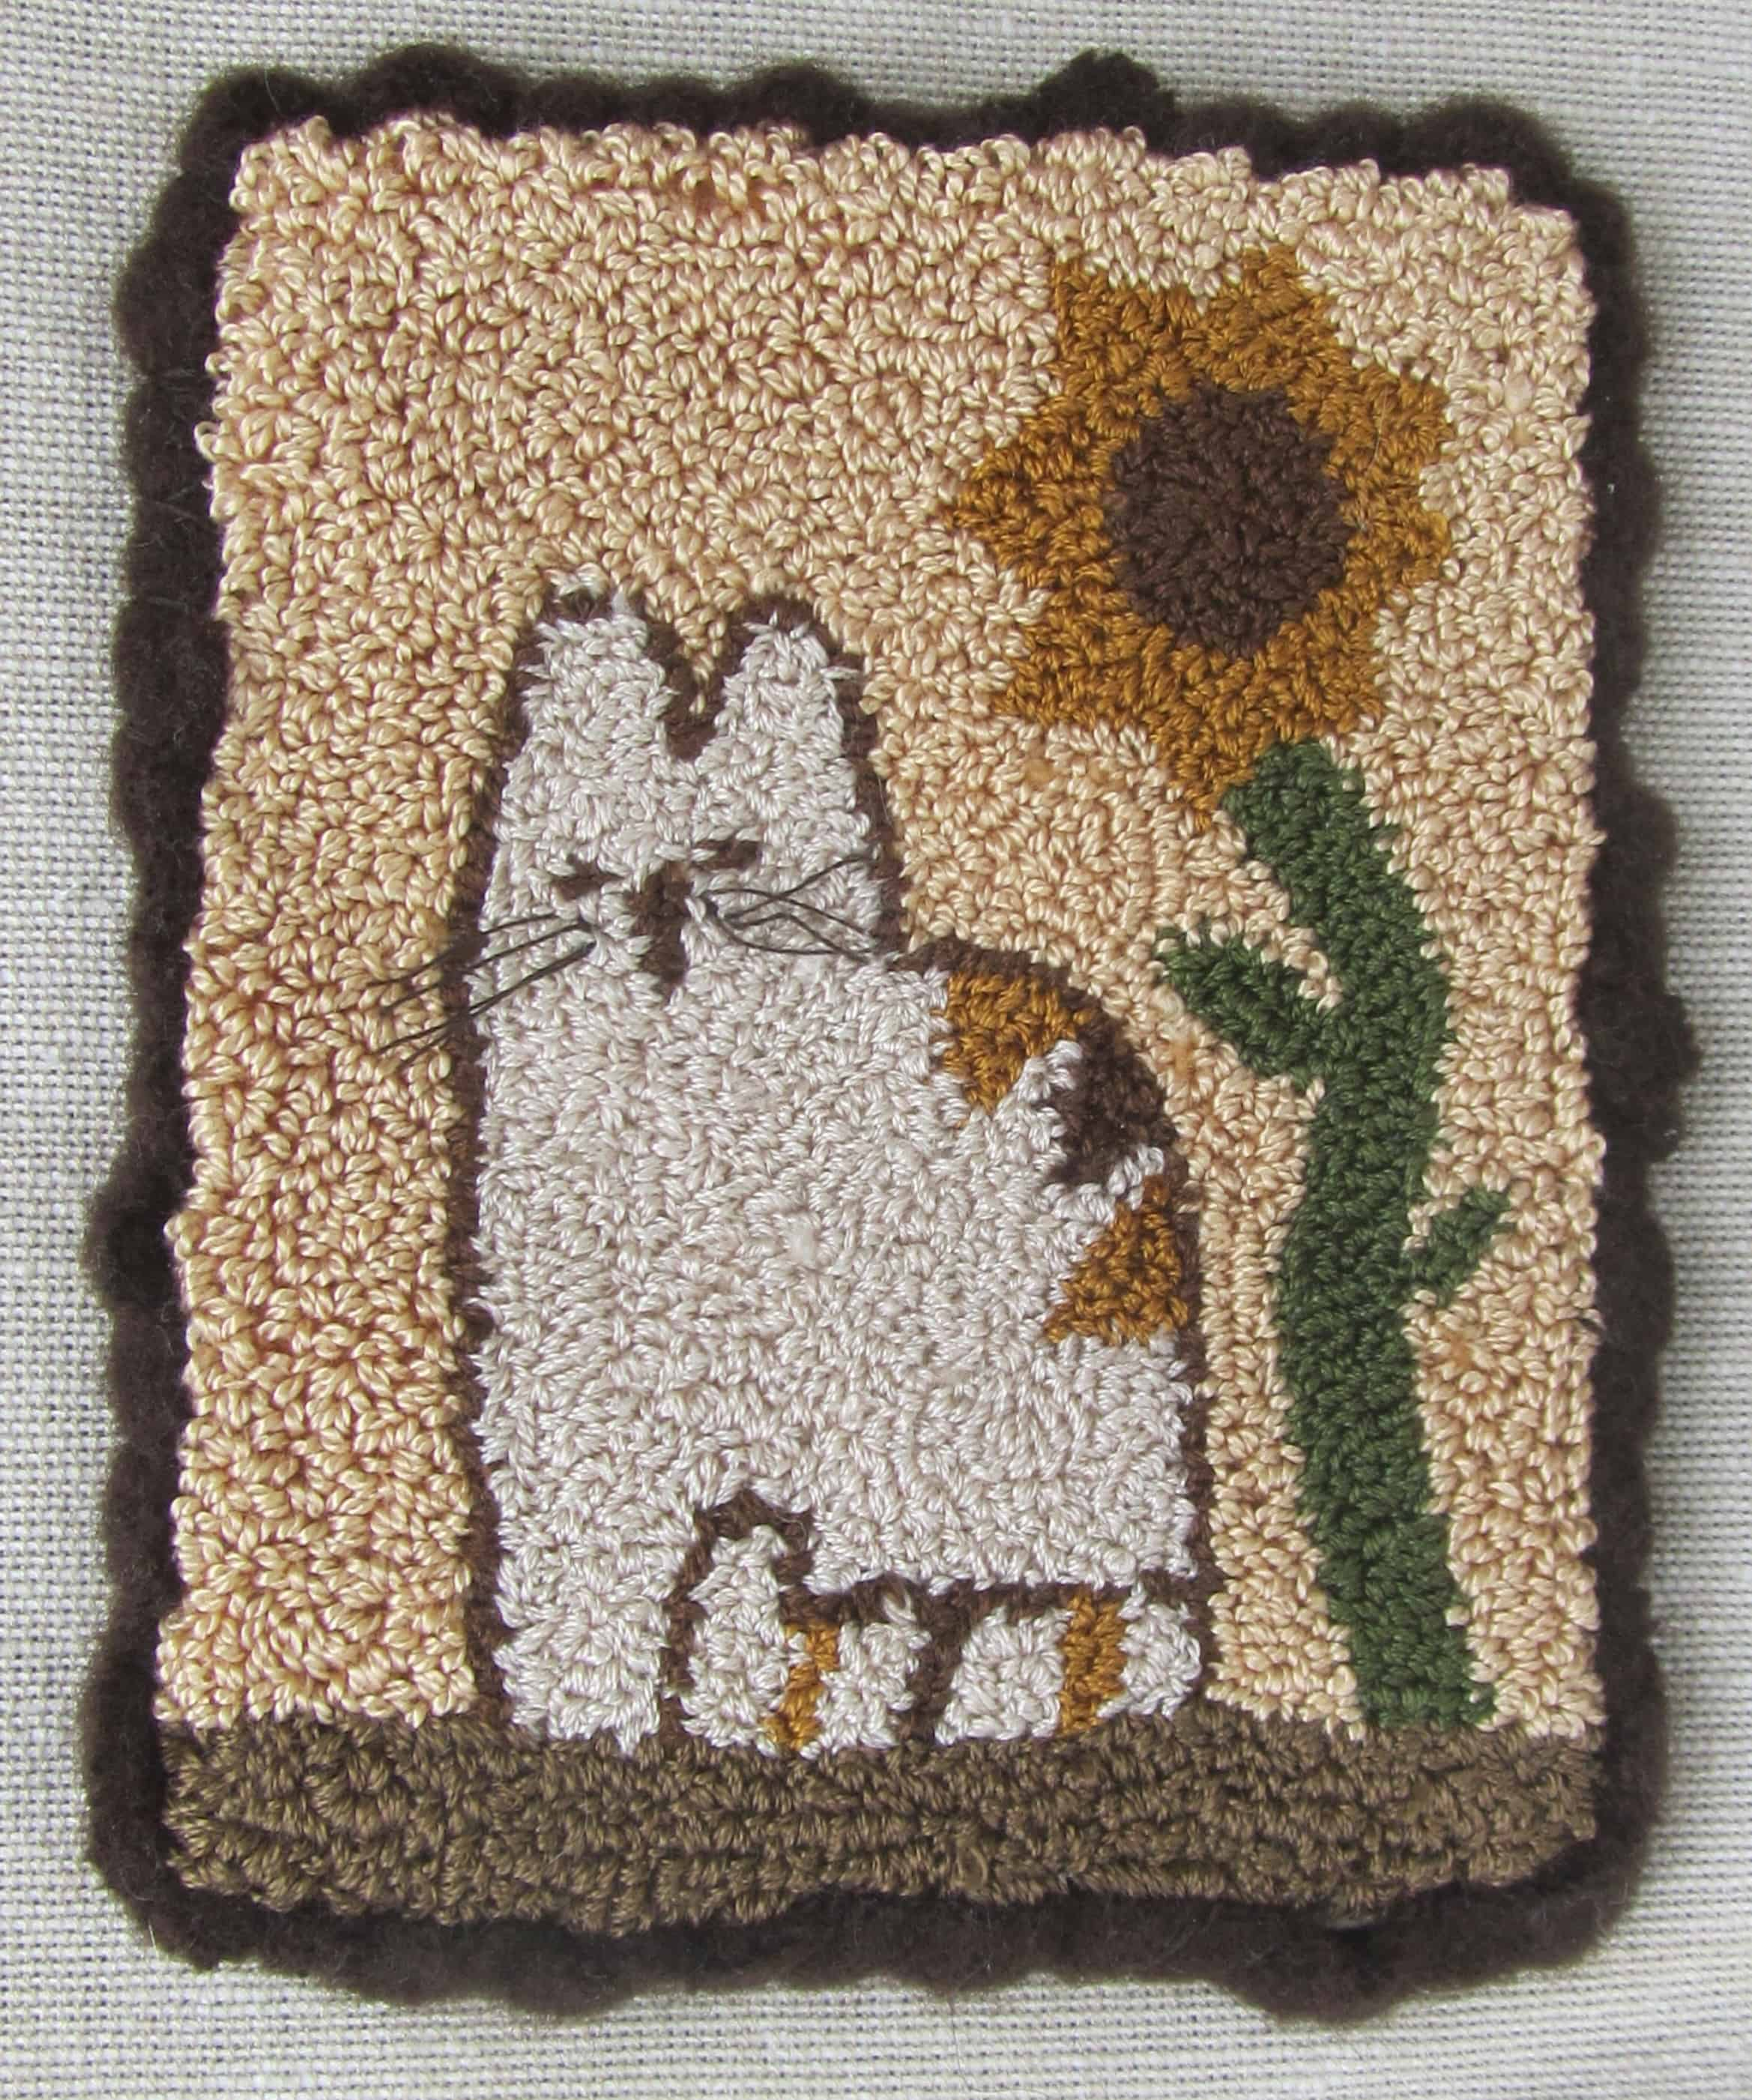 Rug Dogs Embroidery Designs: Calico Cat Punch Needle Free Pattern